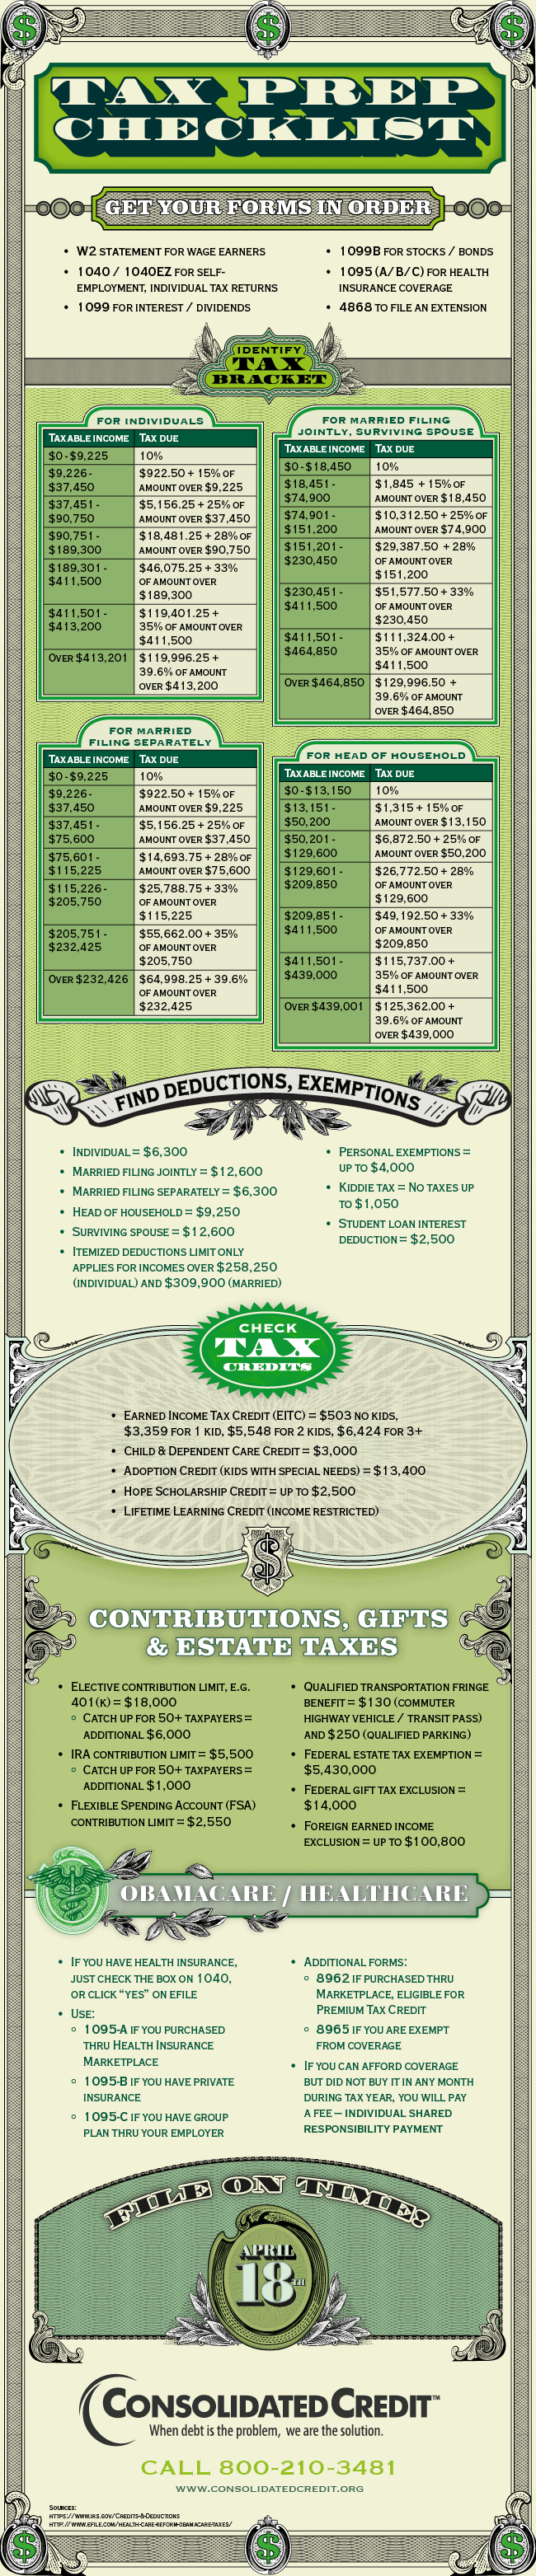 Easy checklist for 2015 income taxes